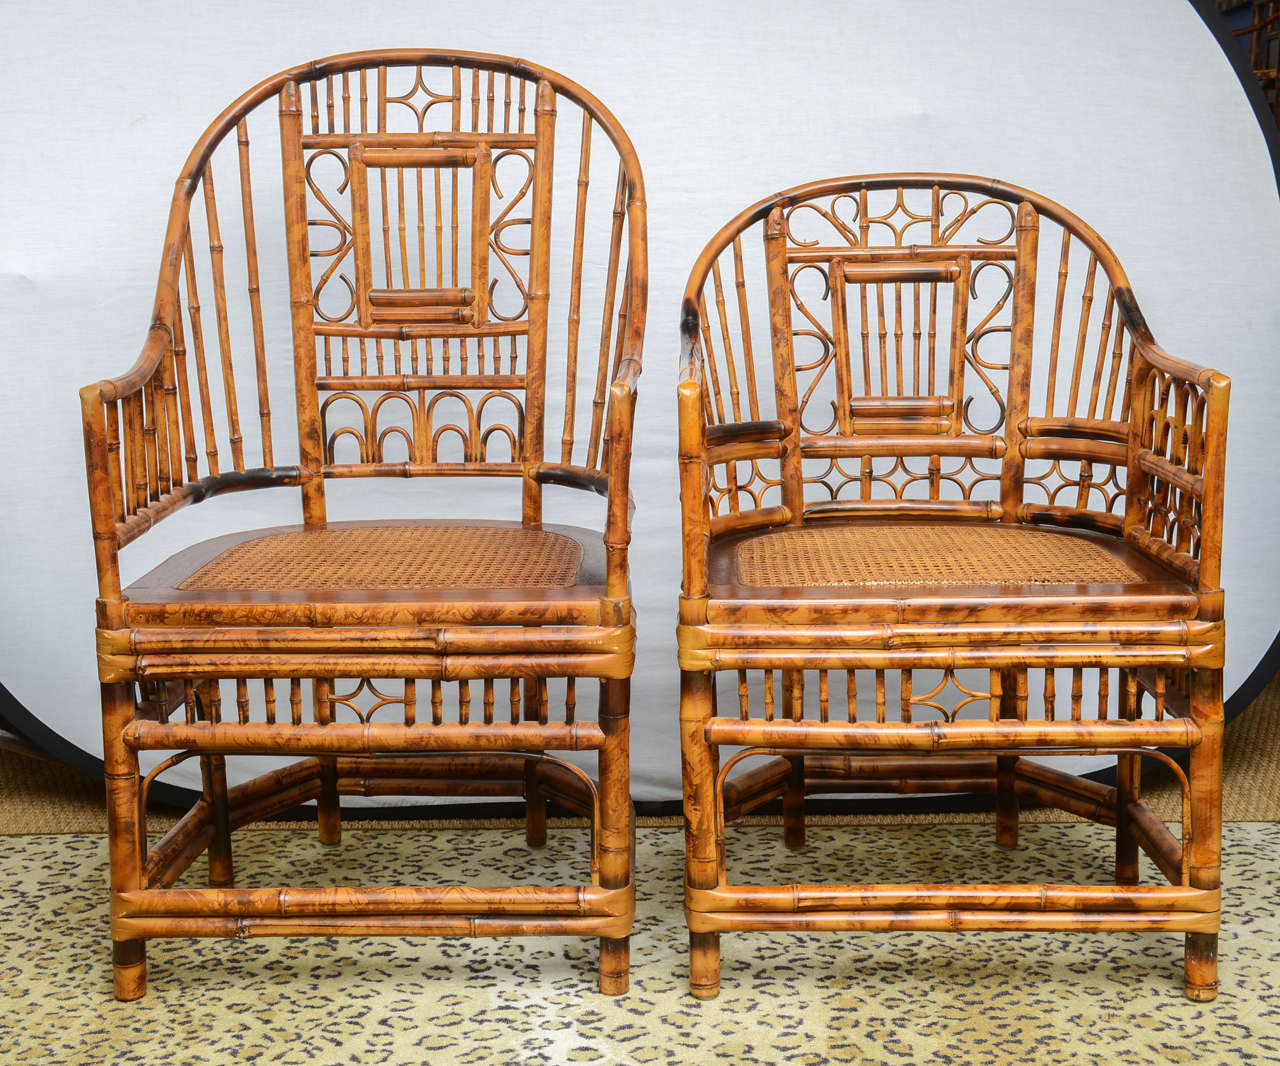 Four Bamboo Chinese Chippendale Chairs With Cane Seat, Two Armchairs (42